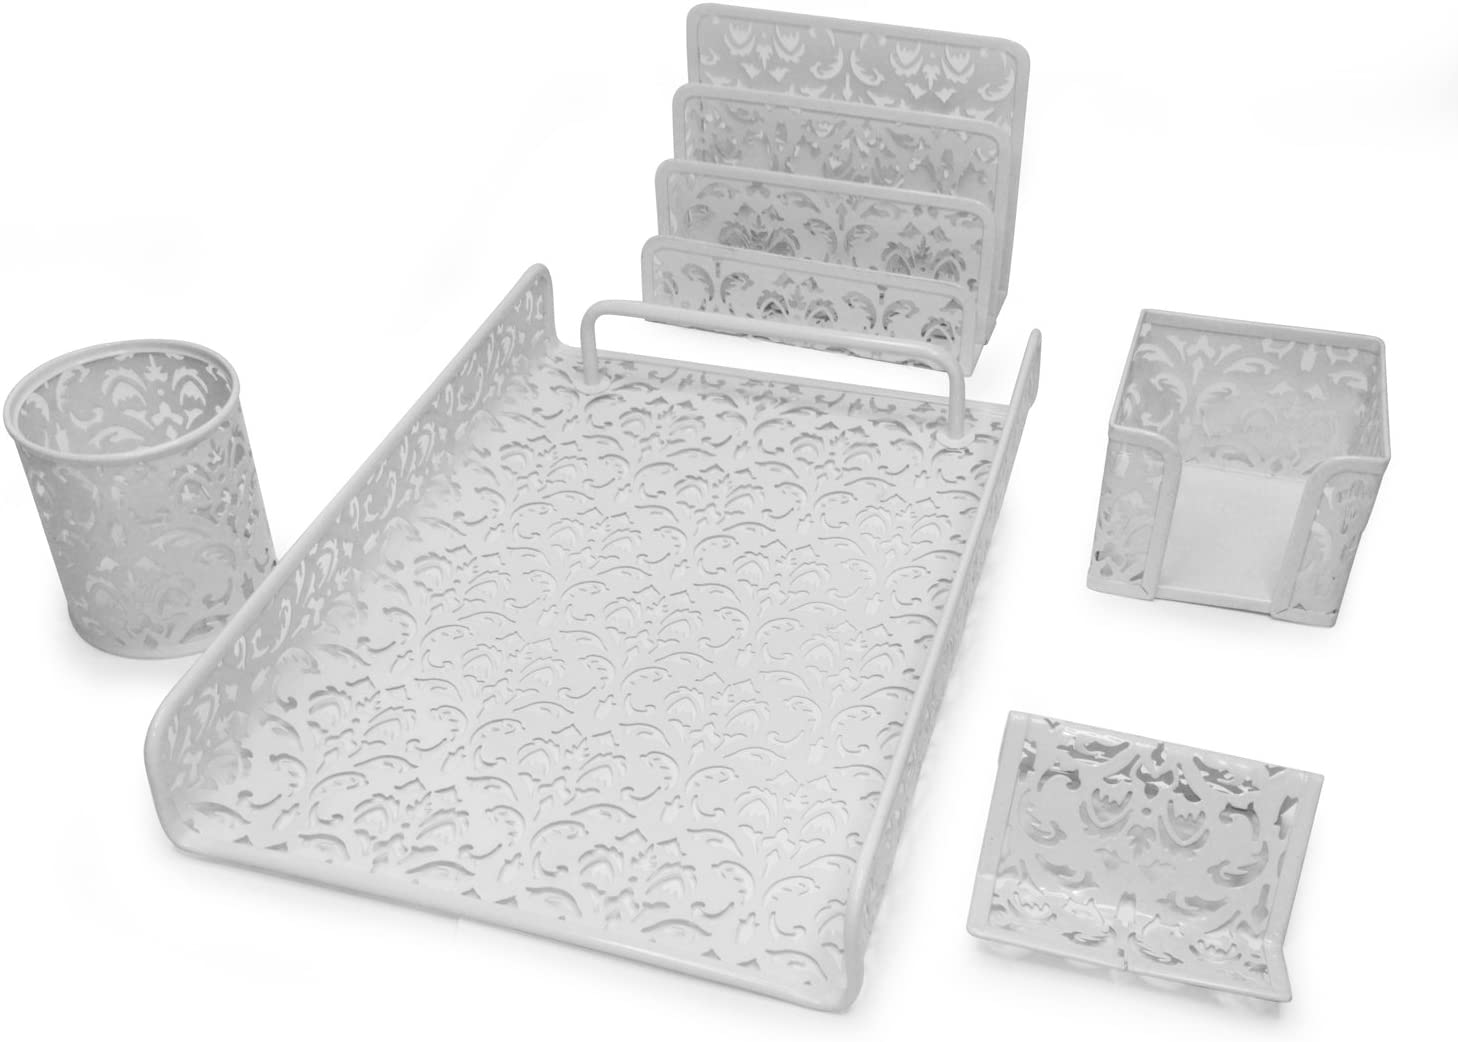 Majestic Goods 5 Piece Flower Design Punched Metal Mesh Office Desk Accessories Organizer - MG502-JM3622SLV Silver, Pack of 5